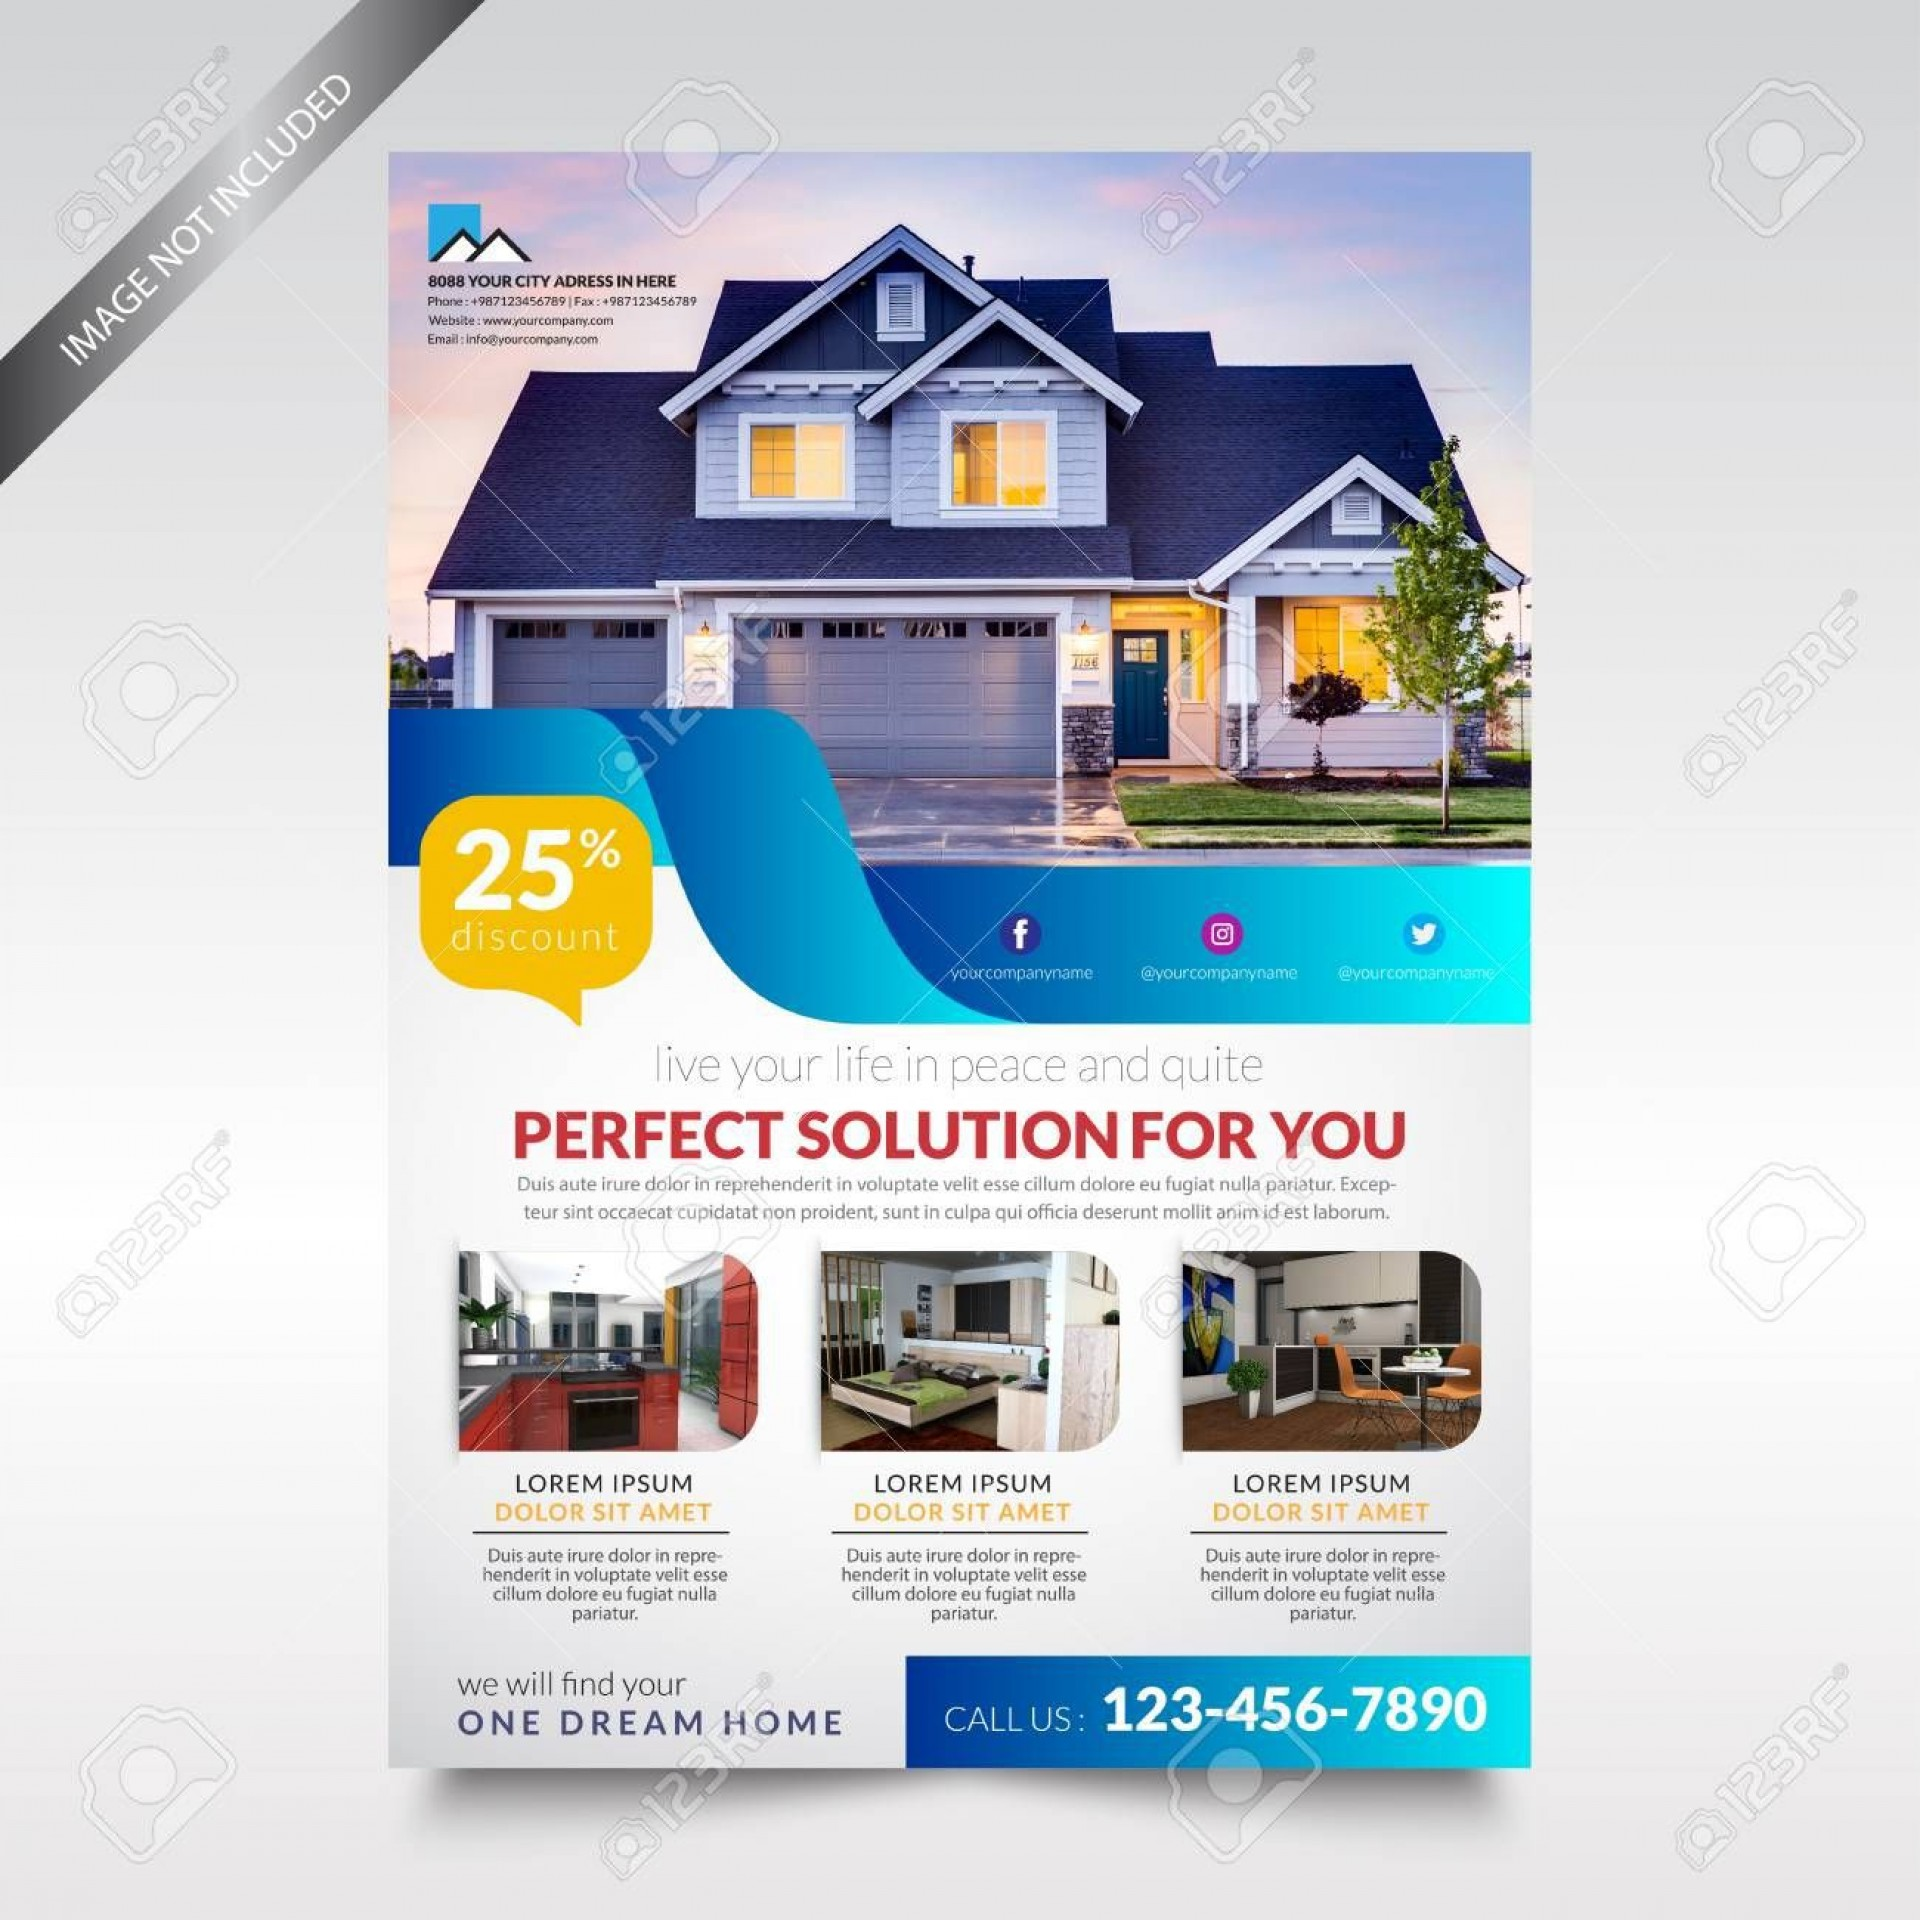 002 Archaicawful Real Estate Flyer Template Free Photo  Publisher Commercial Pdf Download1920